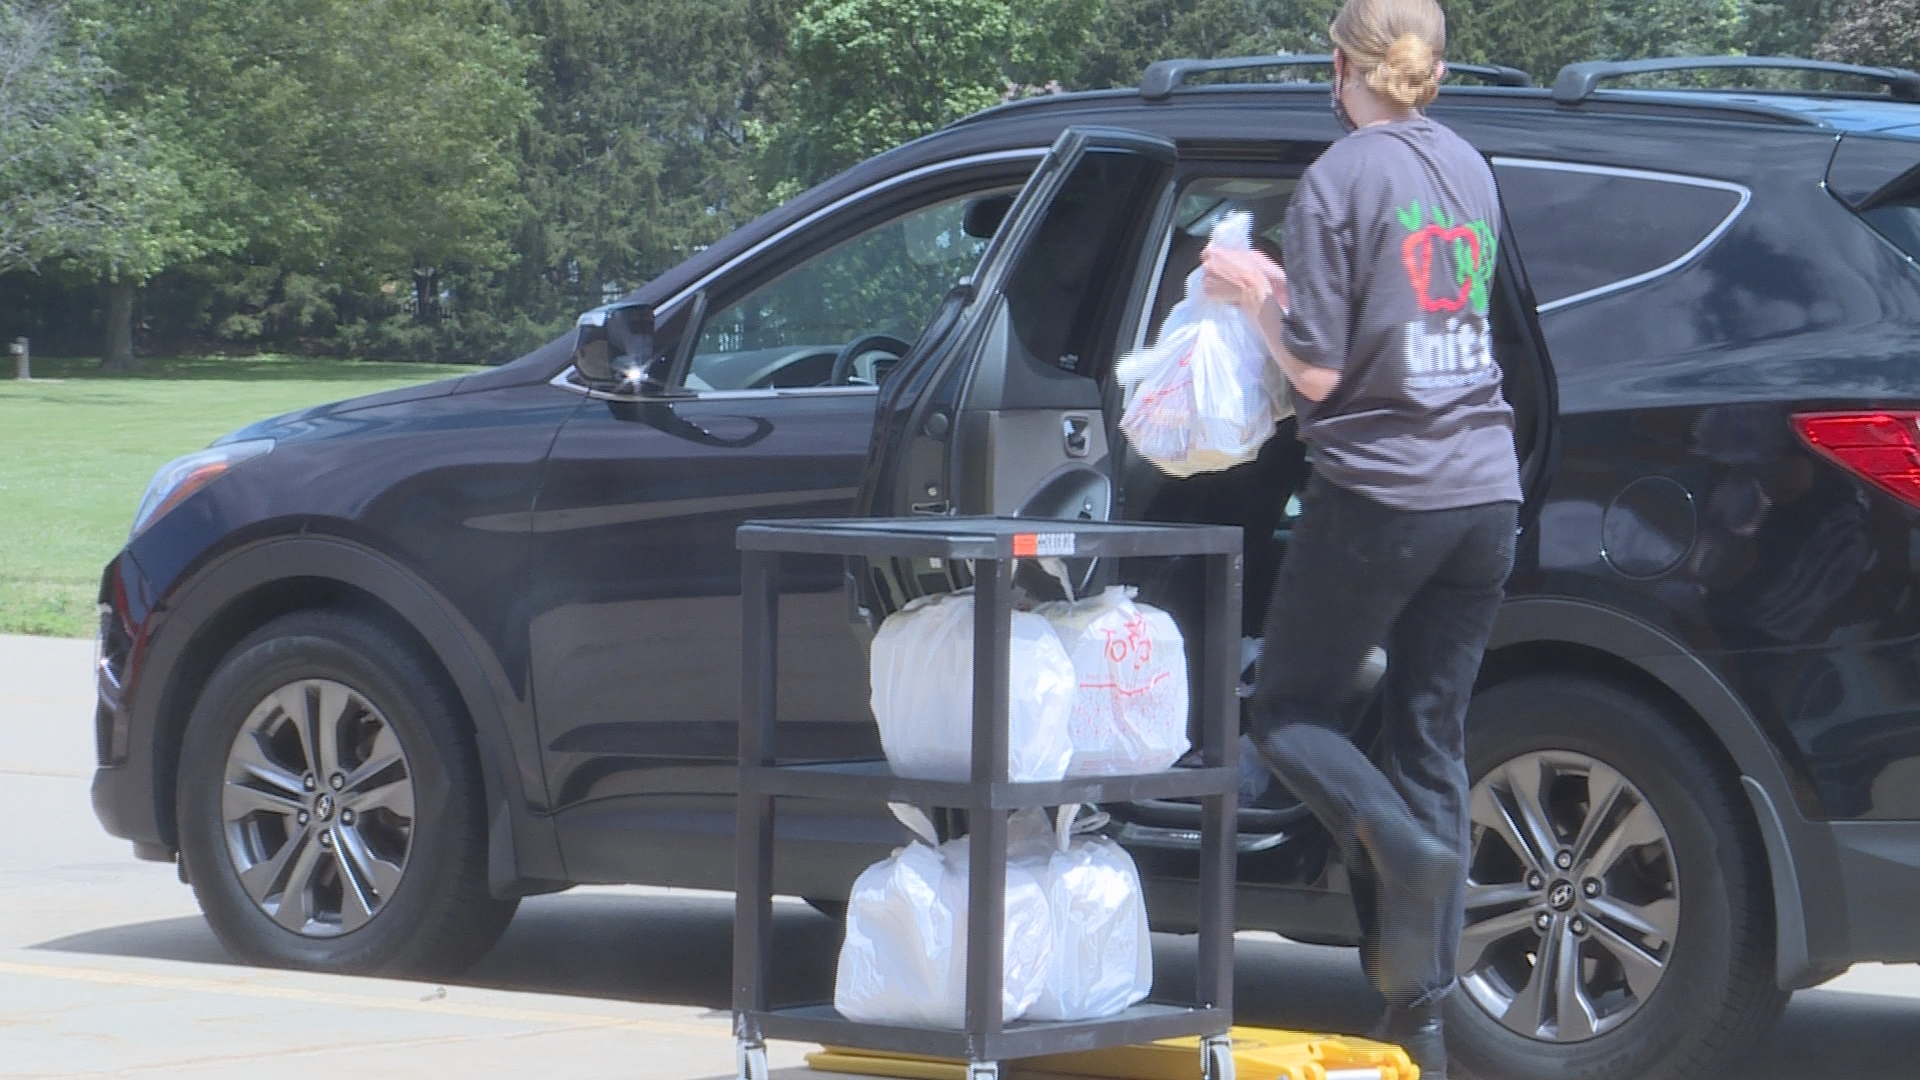 Unit 5 schools provide free meals for local children throughout summer